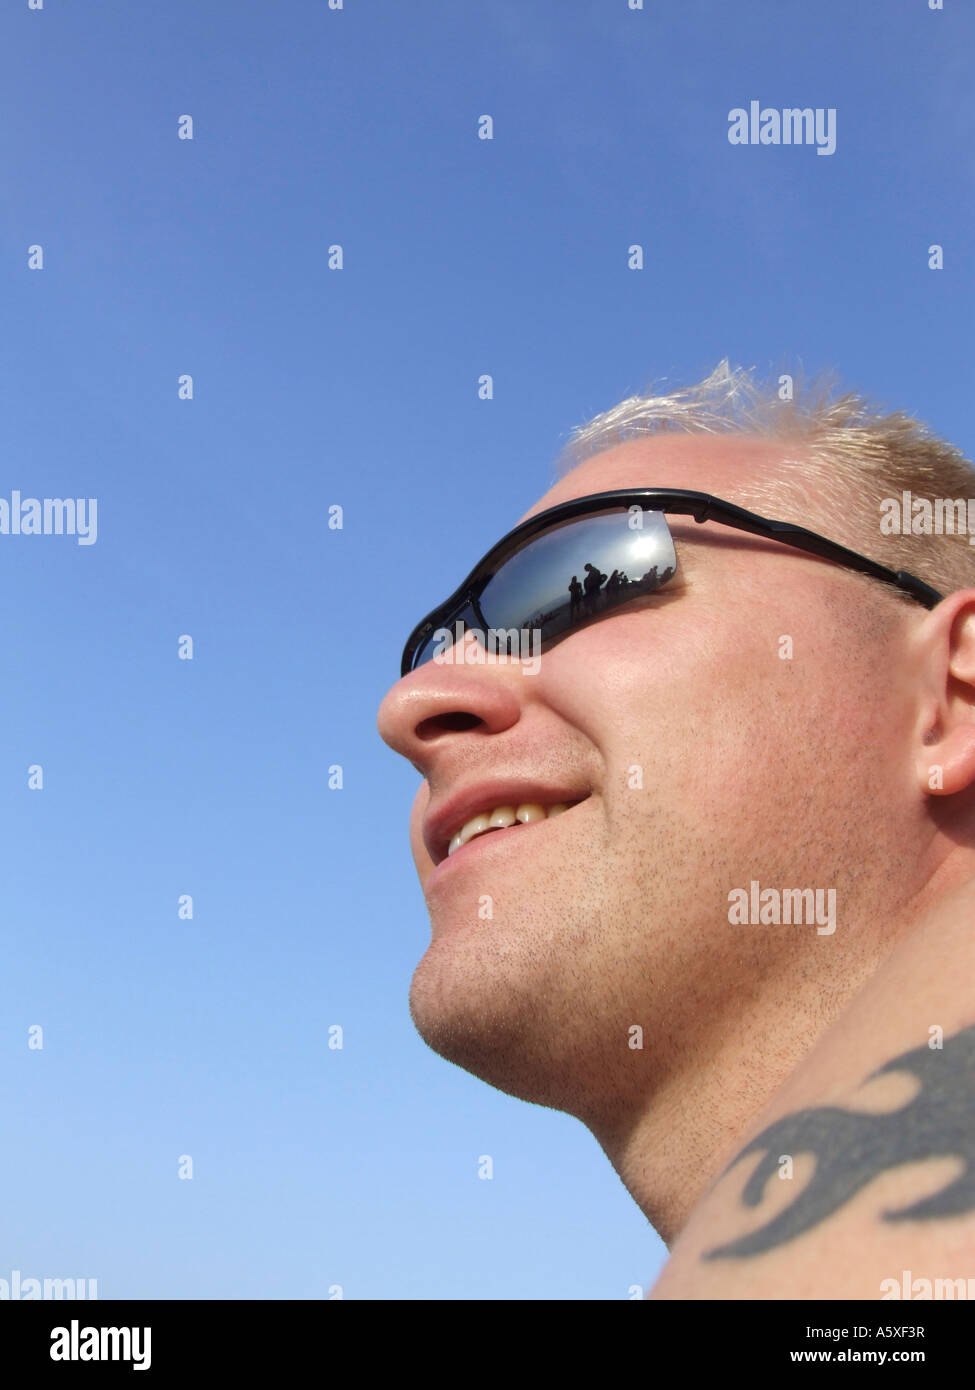 f57e2ea3dc22 Mid adult man wearing sunglasses close up low angle view - Stock Image